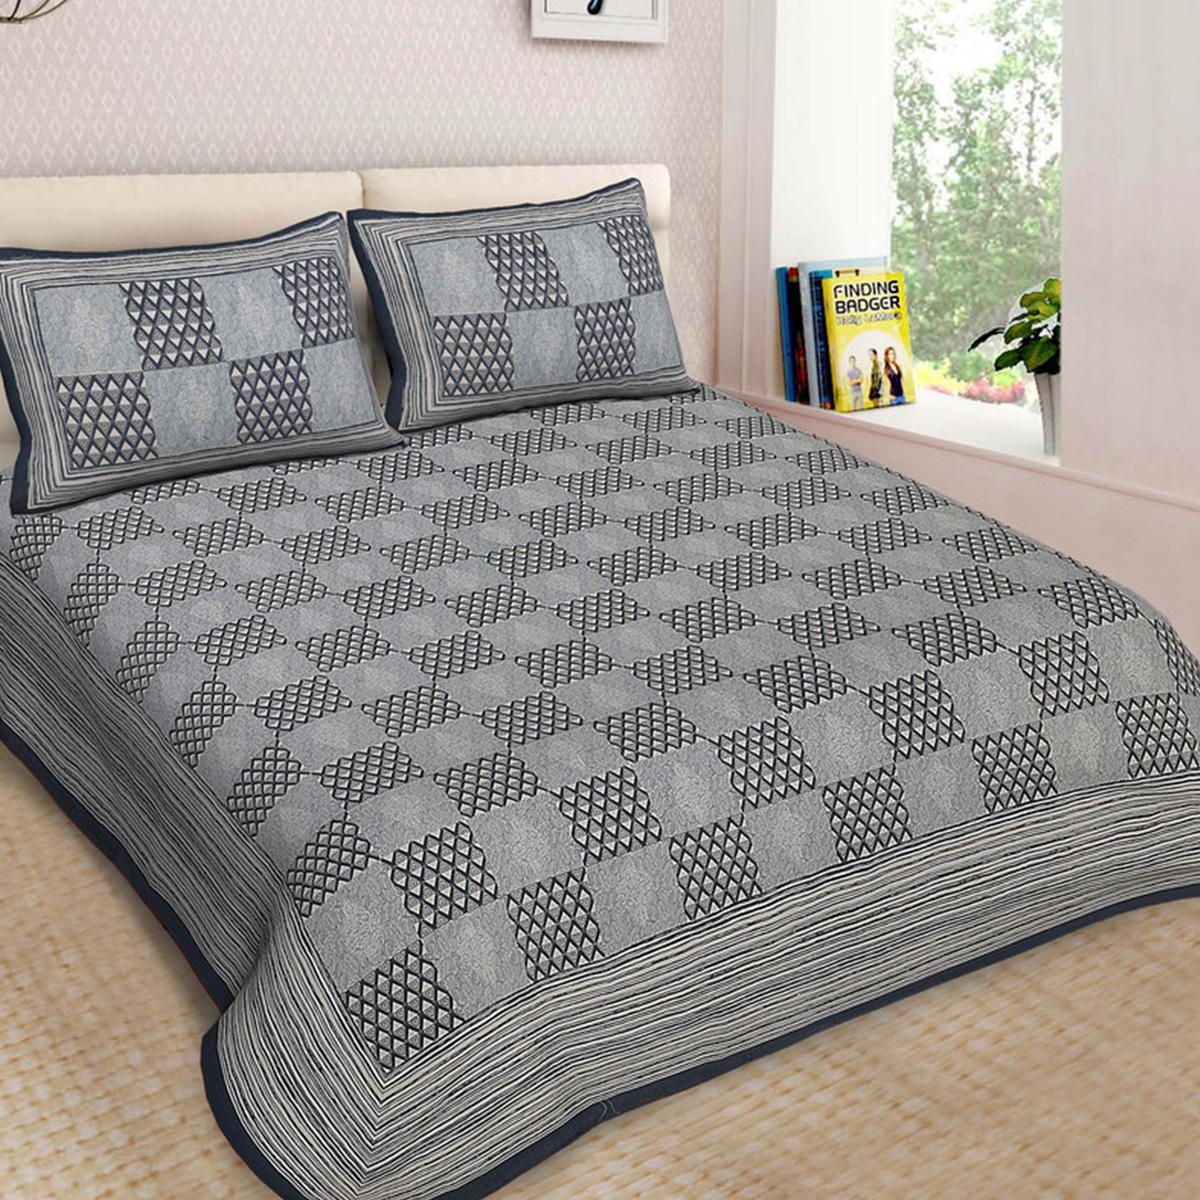 Bhagats Blue Colored Check Print Cotton Double Bedsheet With 2 Pillow Cover